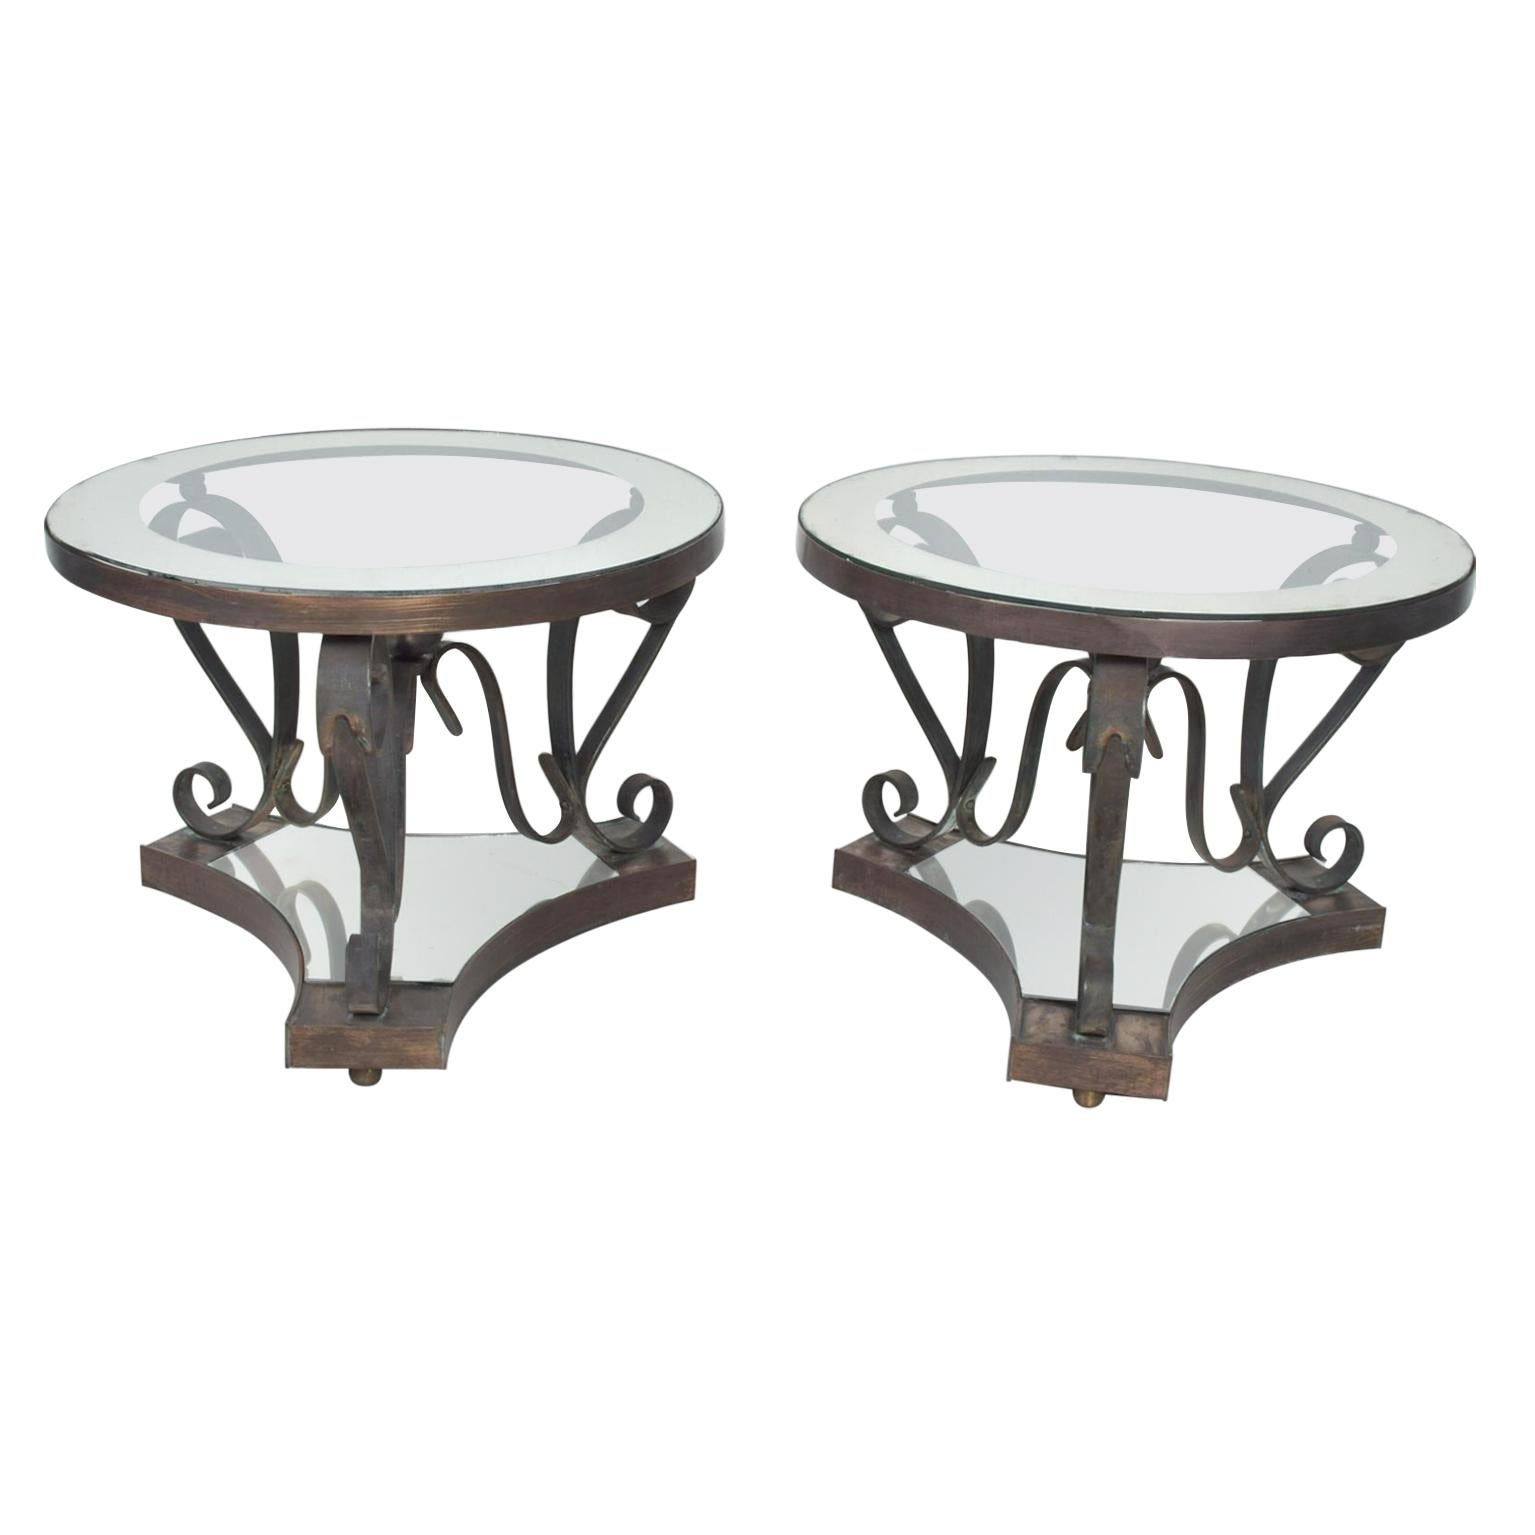 Midcentury Mexican Modernist Arturo Pani Bronze Iron Side Tables